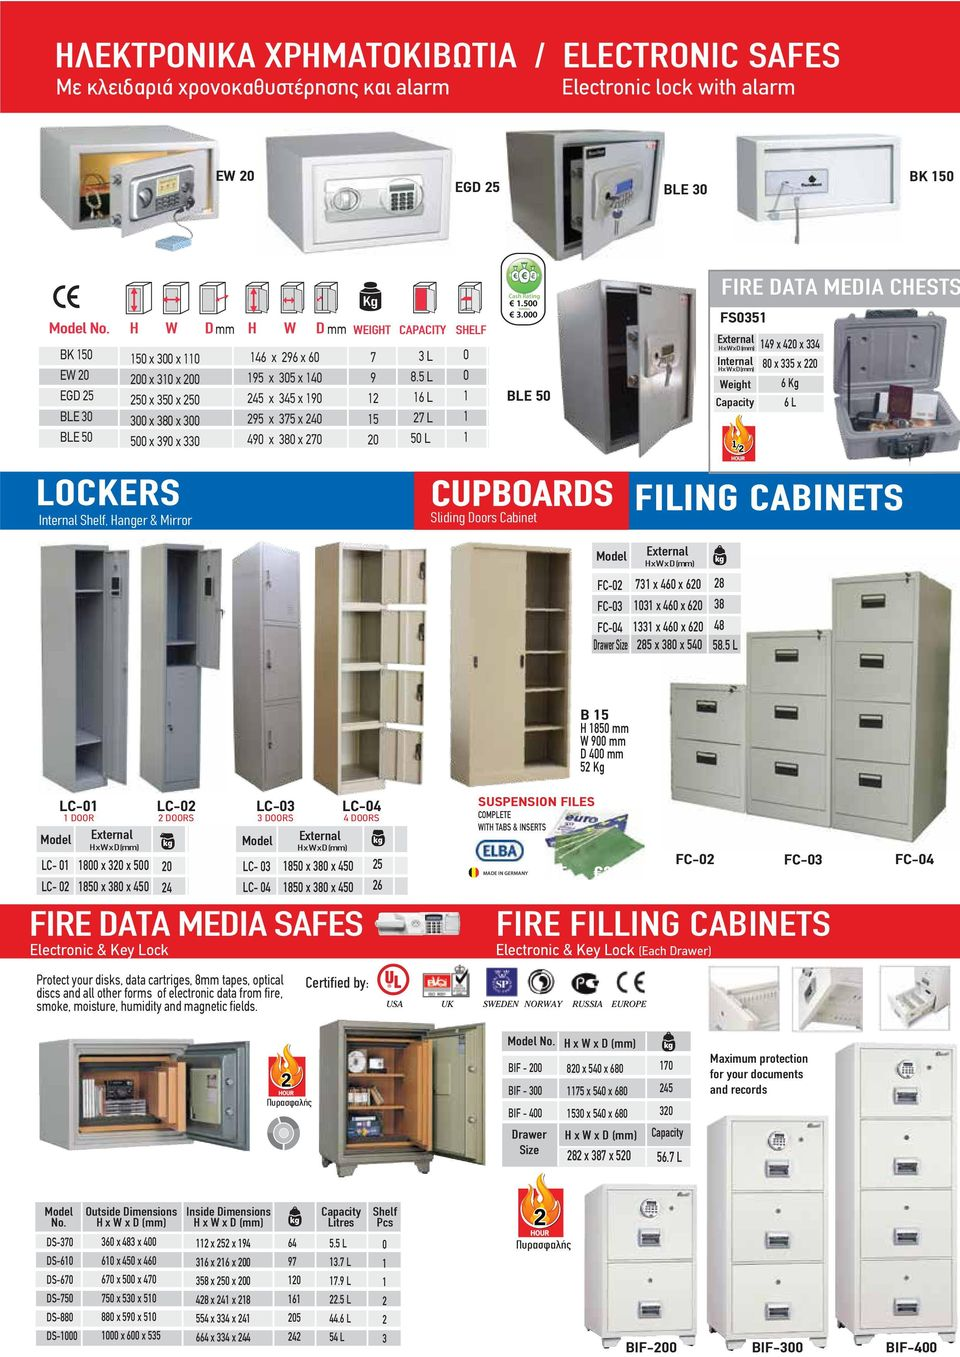 L 85 LOCKERS Internal Shelf, Hanger & Mirror CUPBOARDS Sliding Doors Cabinet FILING CABINETS FC- FC- FC-4 7 x 46 x 6 x 46 x 6 x 46 x 6 8 8 48 Drawer Size 85 x 8 x 54 58.